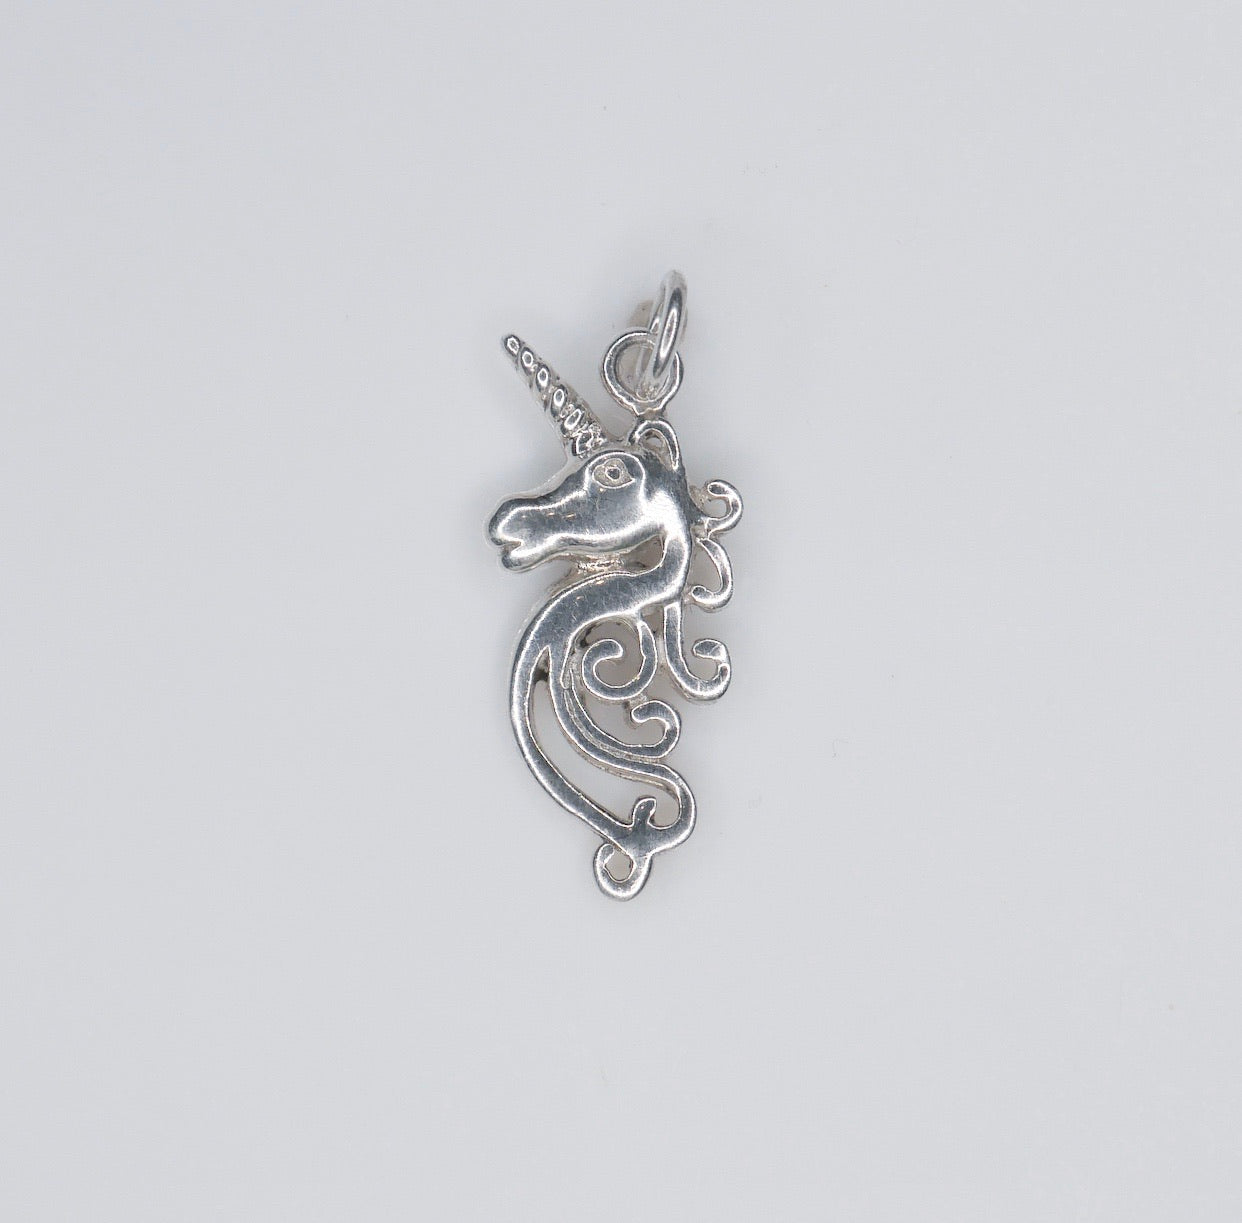 Original Unicorn Pendant.